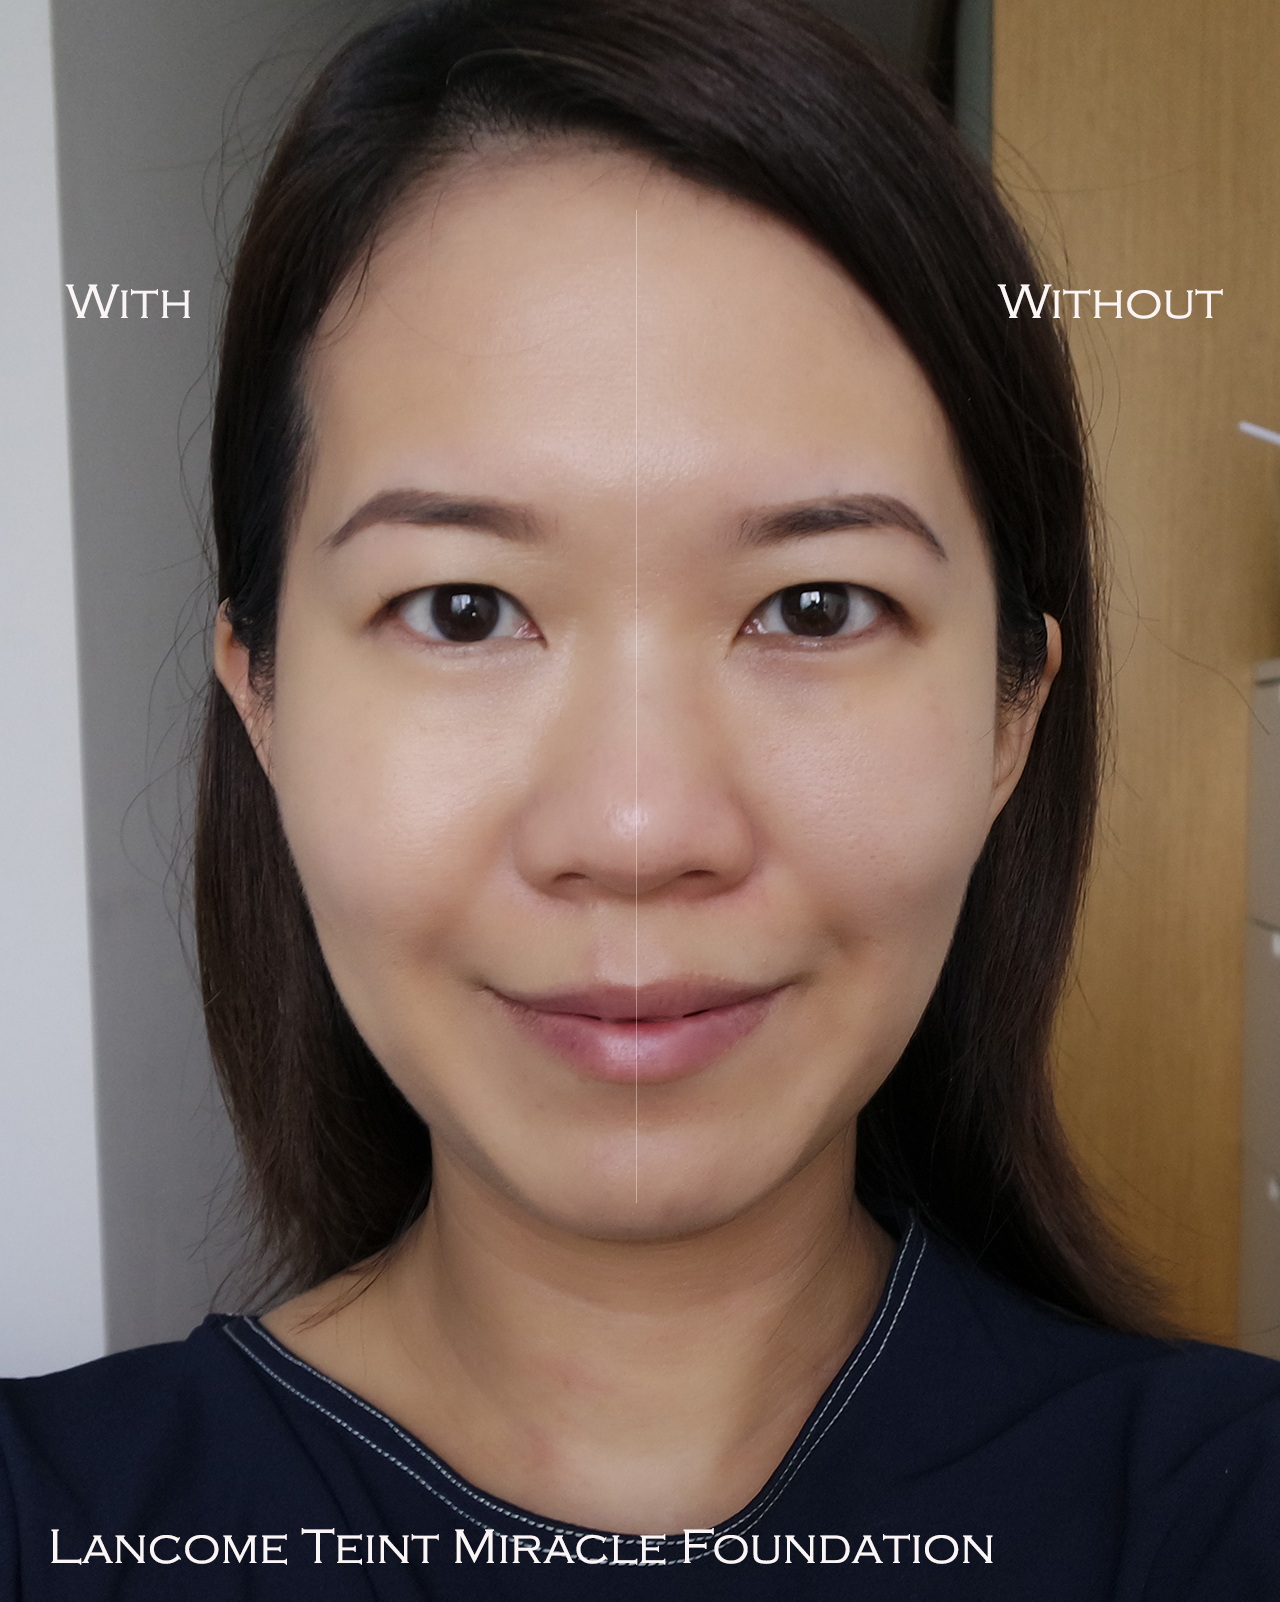 Lancome Teint Miracle Foundation before after comparison